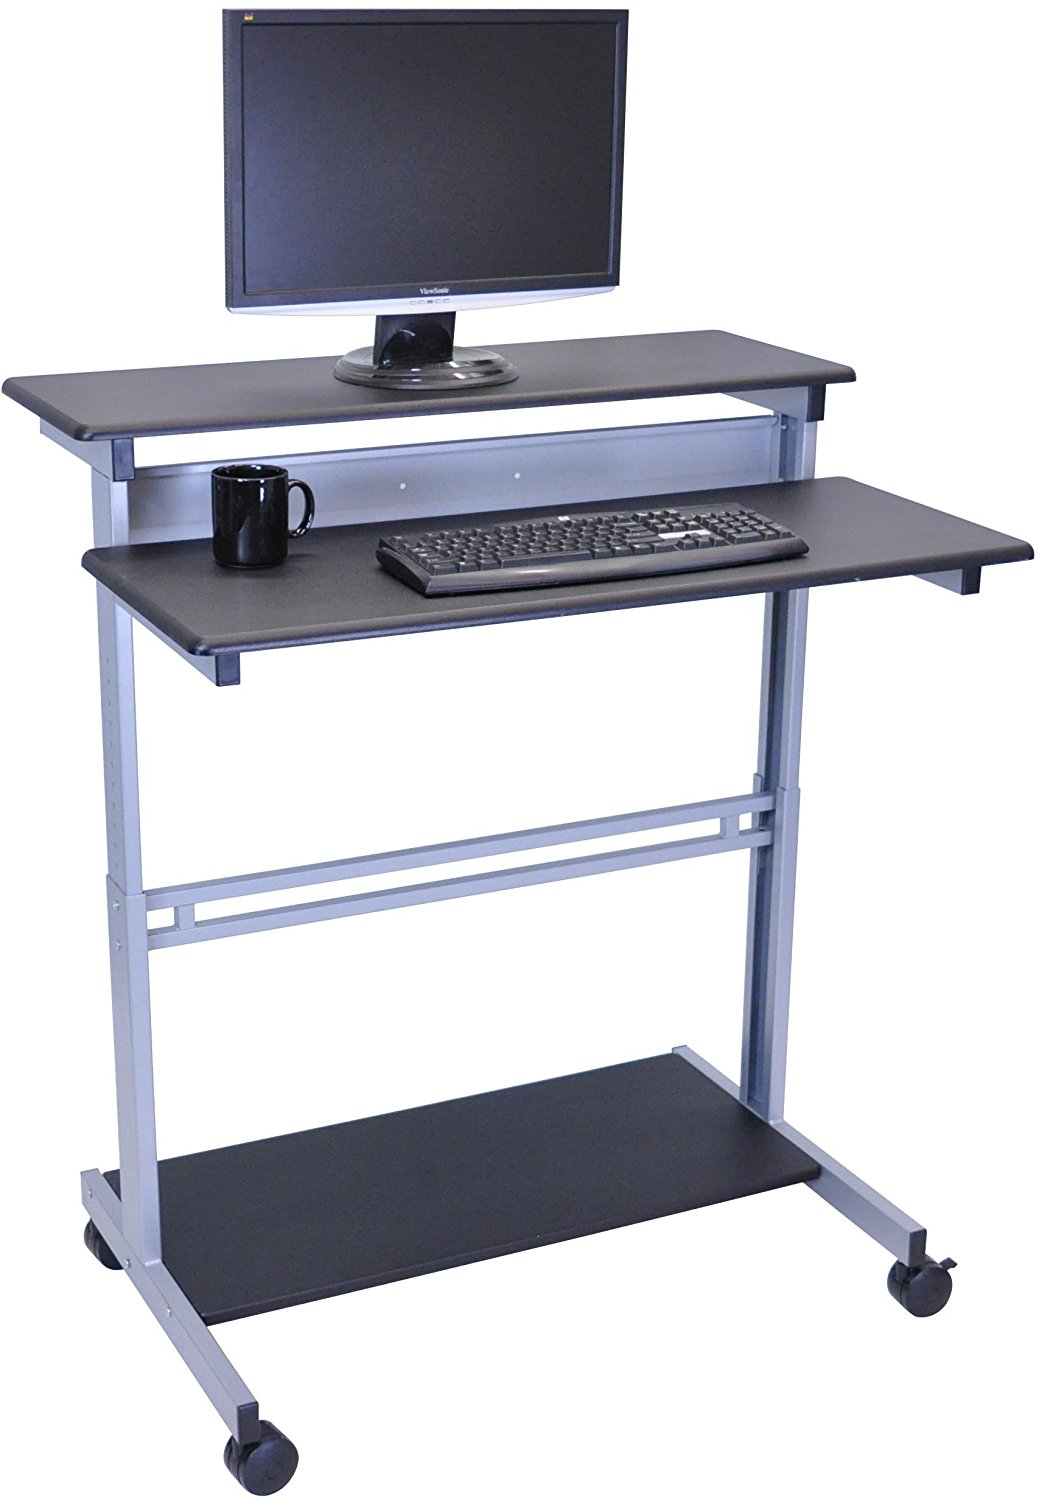 Perfect Style of Office Depot Desks for Your Workspace Ideas: Standing Desk Office Depot | Office Depot Desks | Officemax Chairs